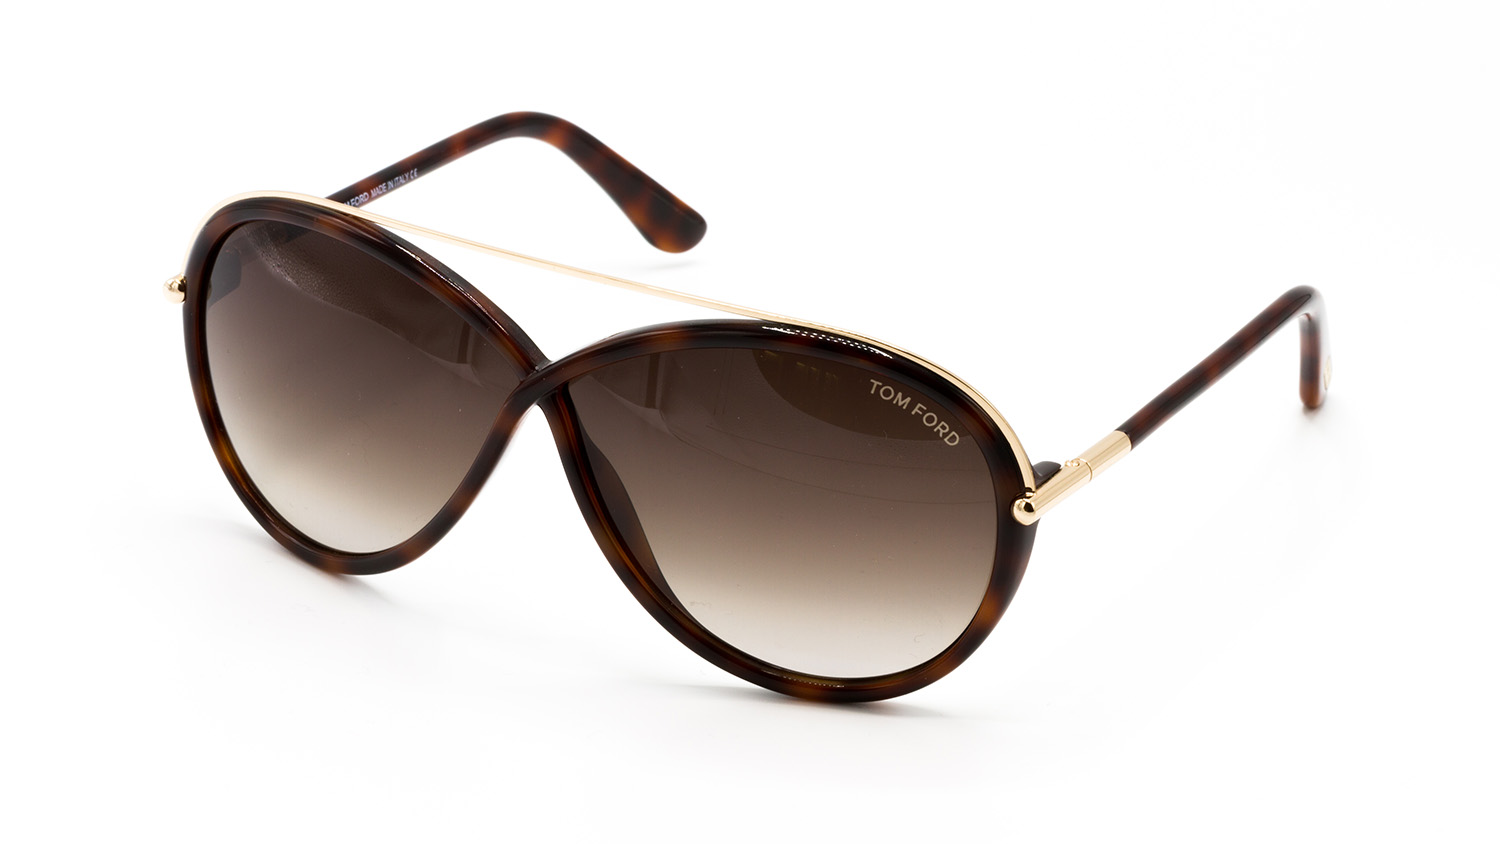 Tom Ford TF454